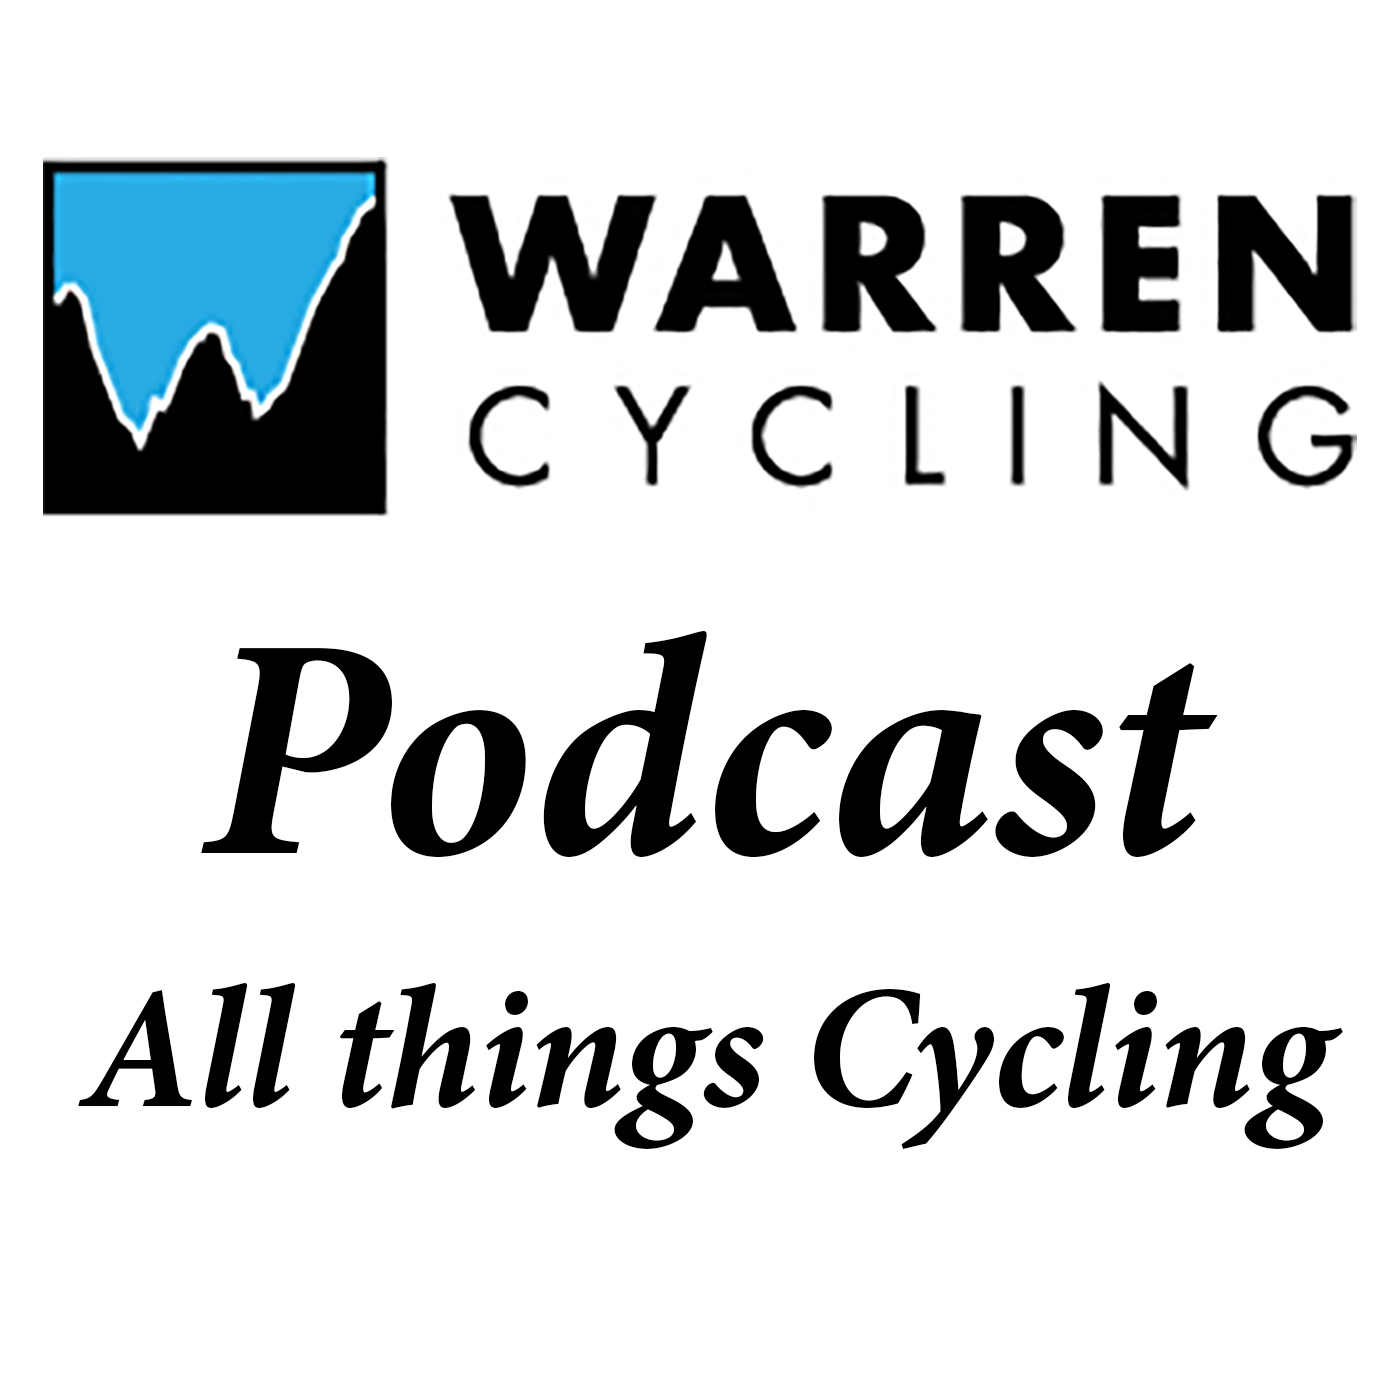 Warren Cycling Podcast Episode 233: Andrew Giniat Interview show art